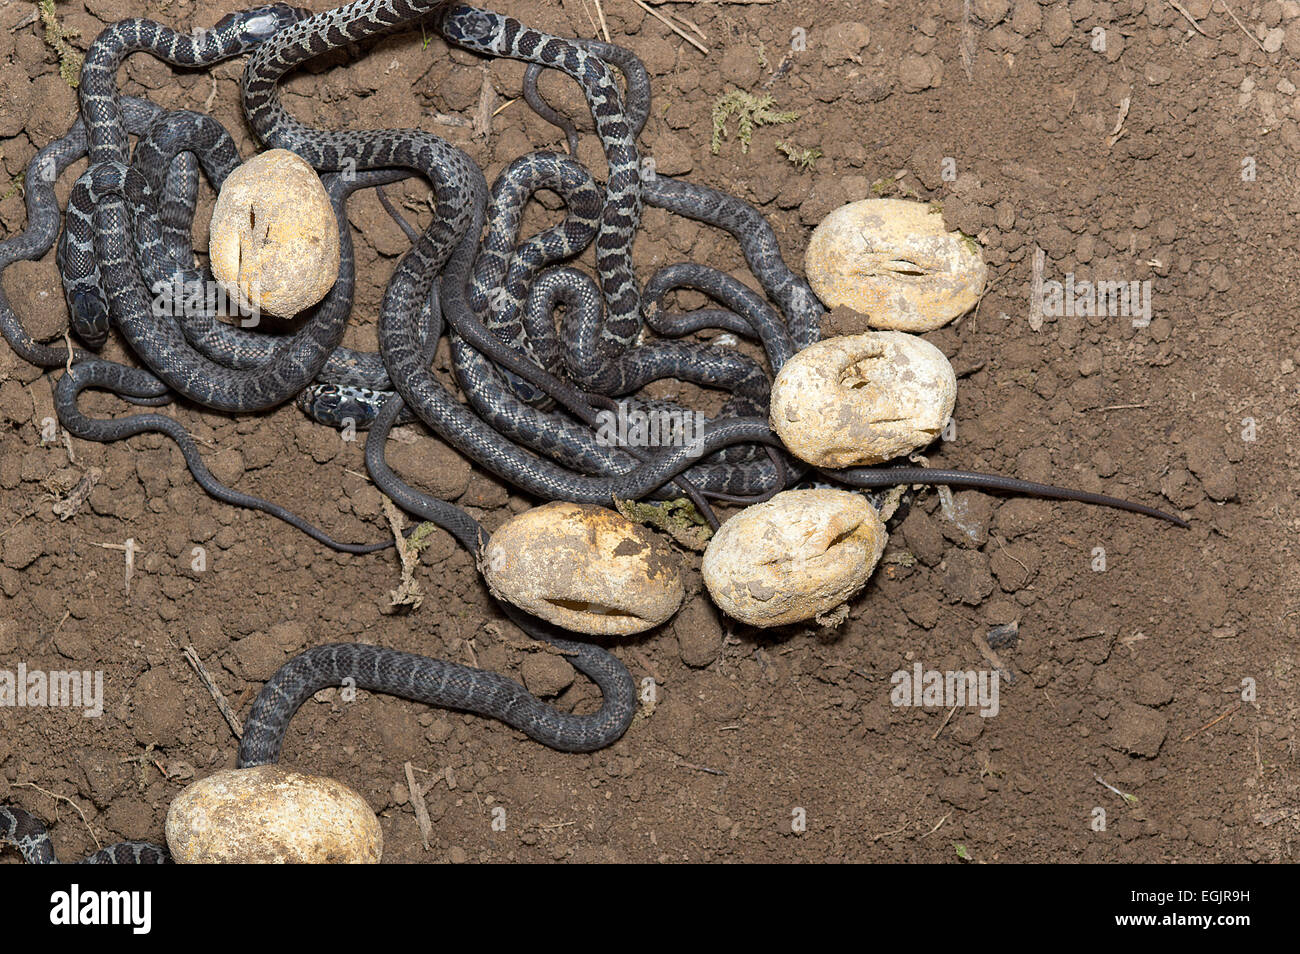 Northern Black Racer Coluber Constrictor Eggs Hatching With Young North American Reptile Snake